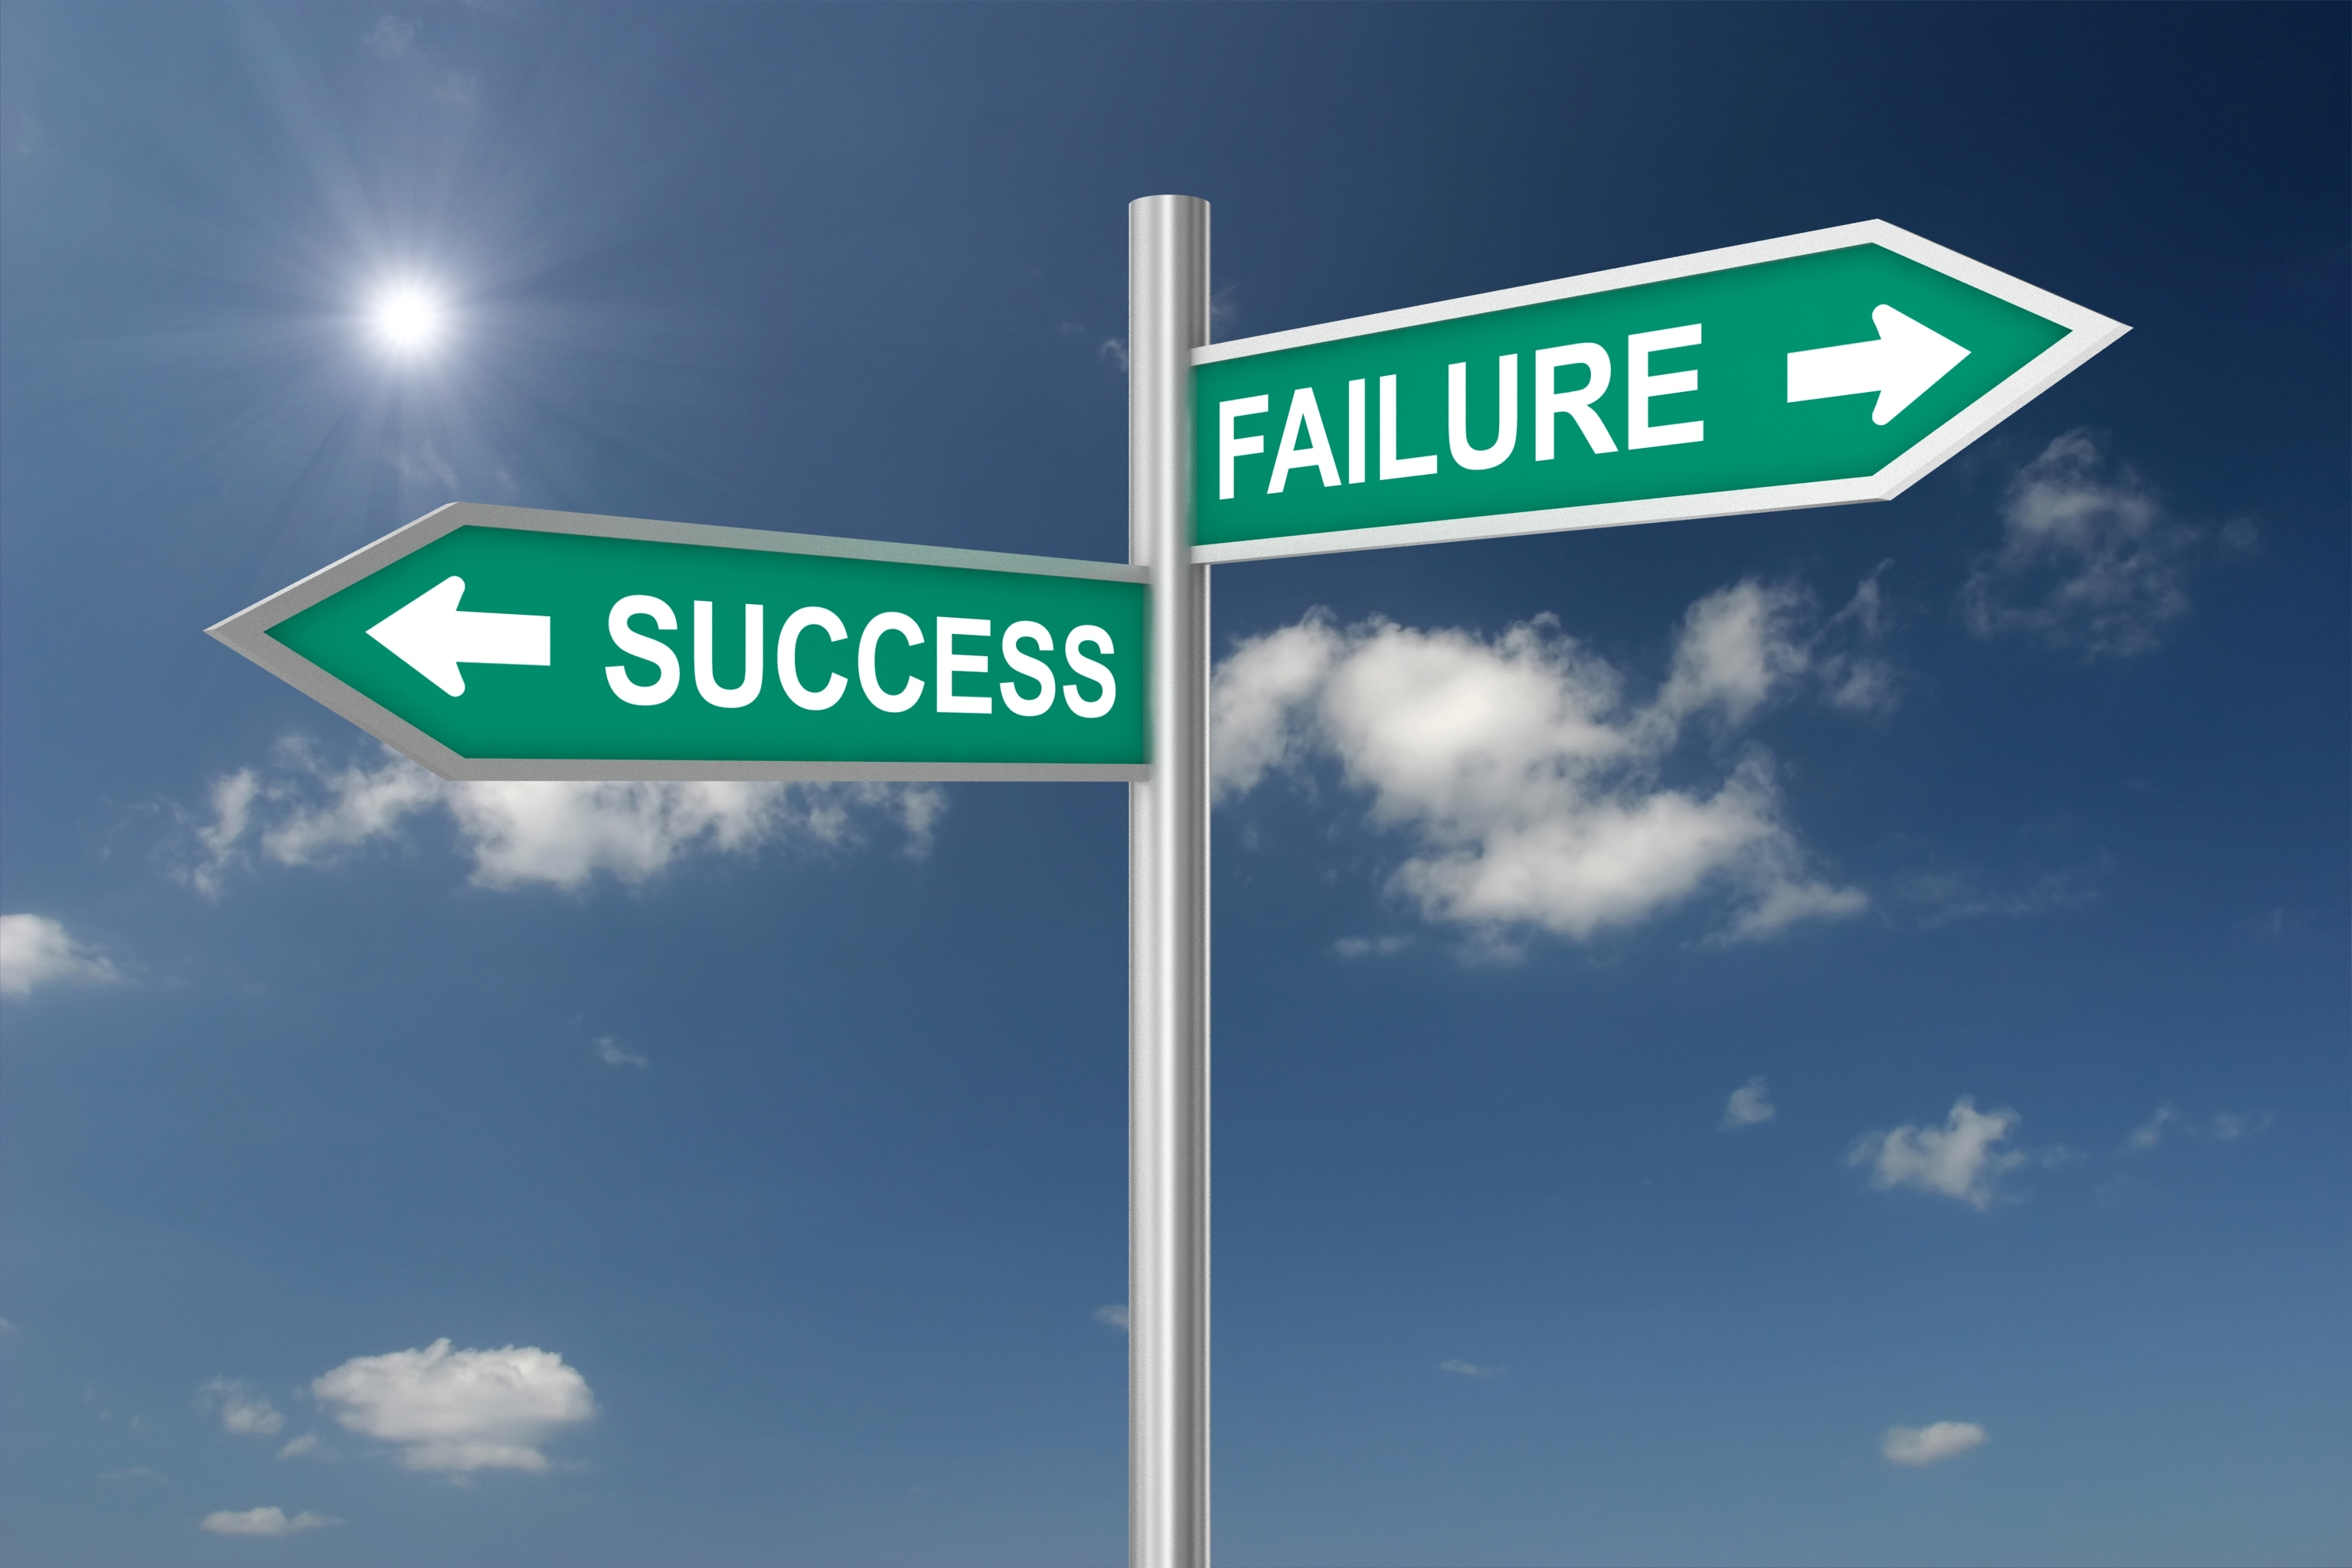 sign wth success and failure pointing in different directions